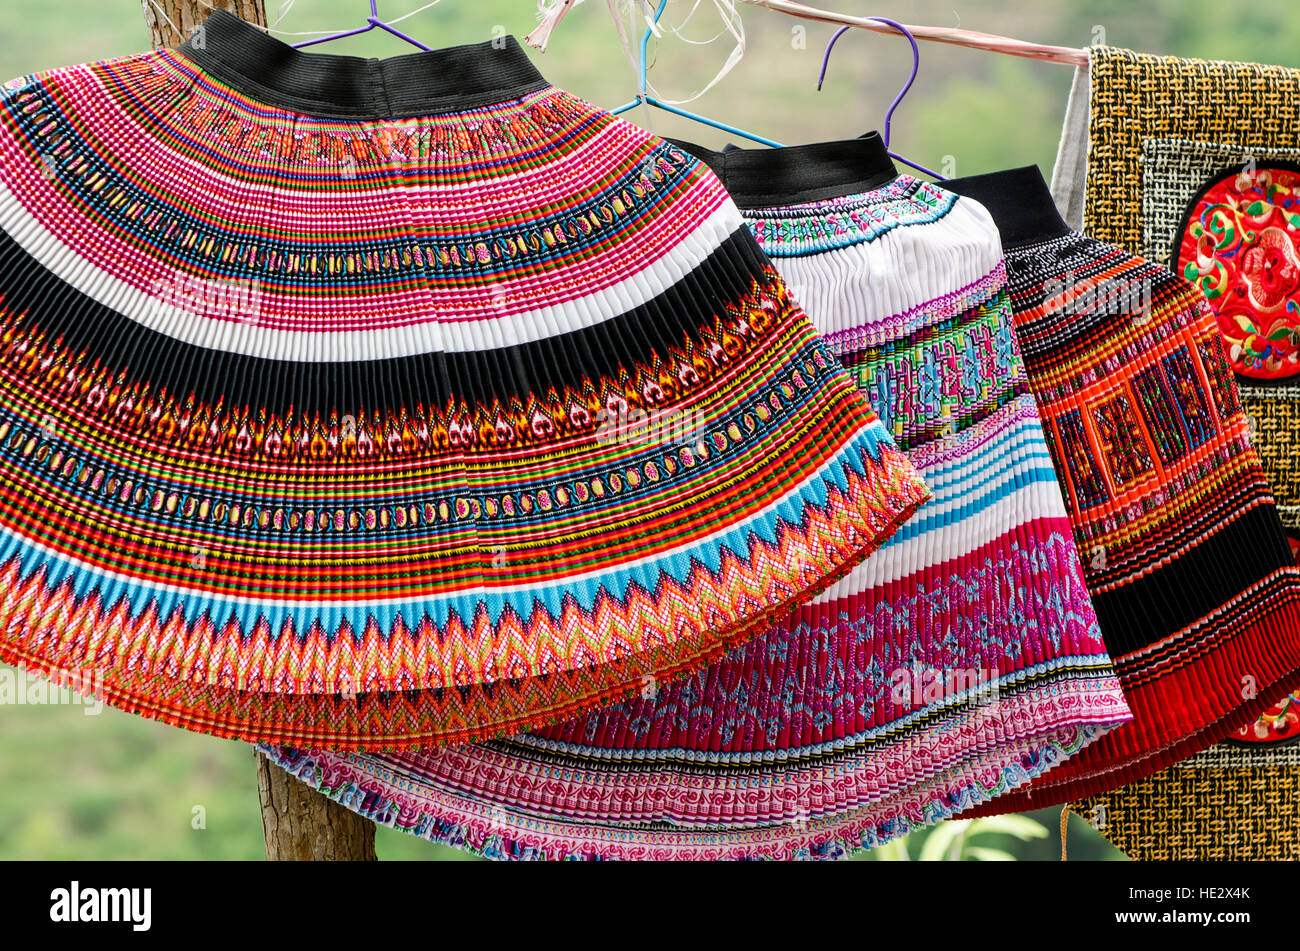 Woven traditional wool skirts dresses Longsheng Longji Dragon Spine Rice Terraces paddies Longsheng, guilin, Guangxi, - Stock Image